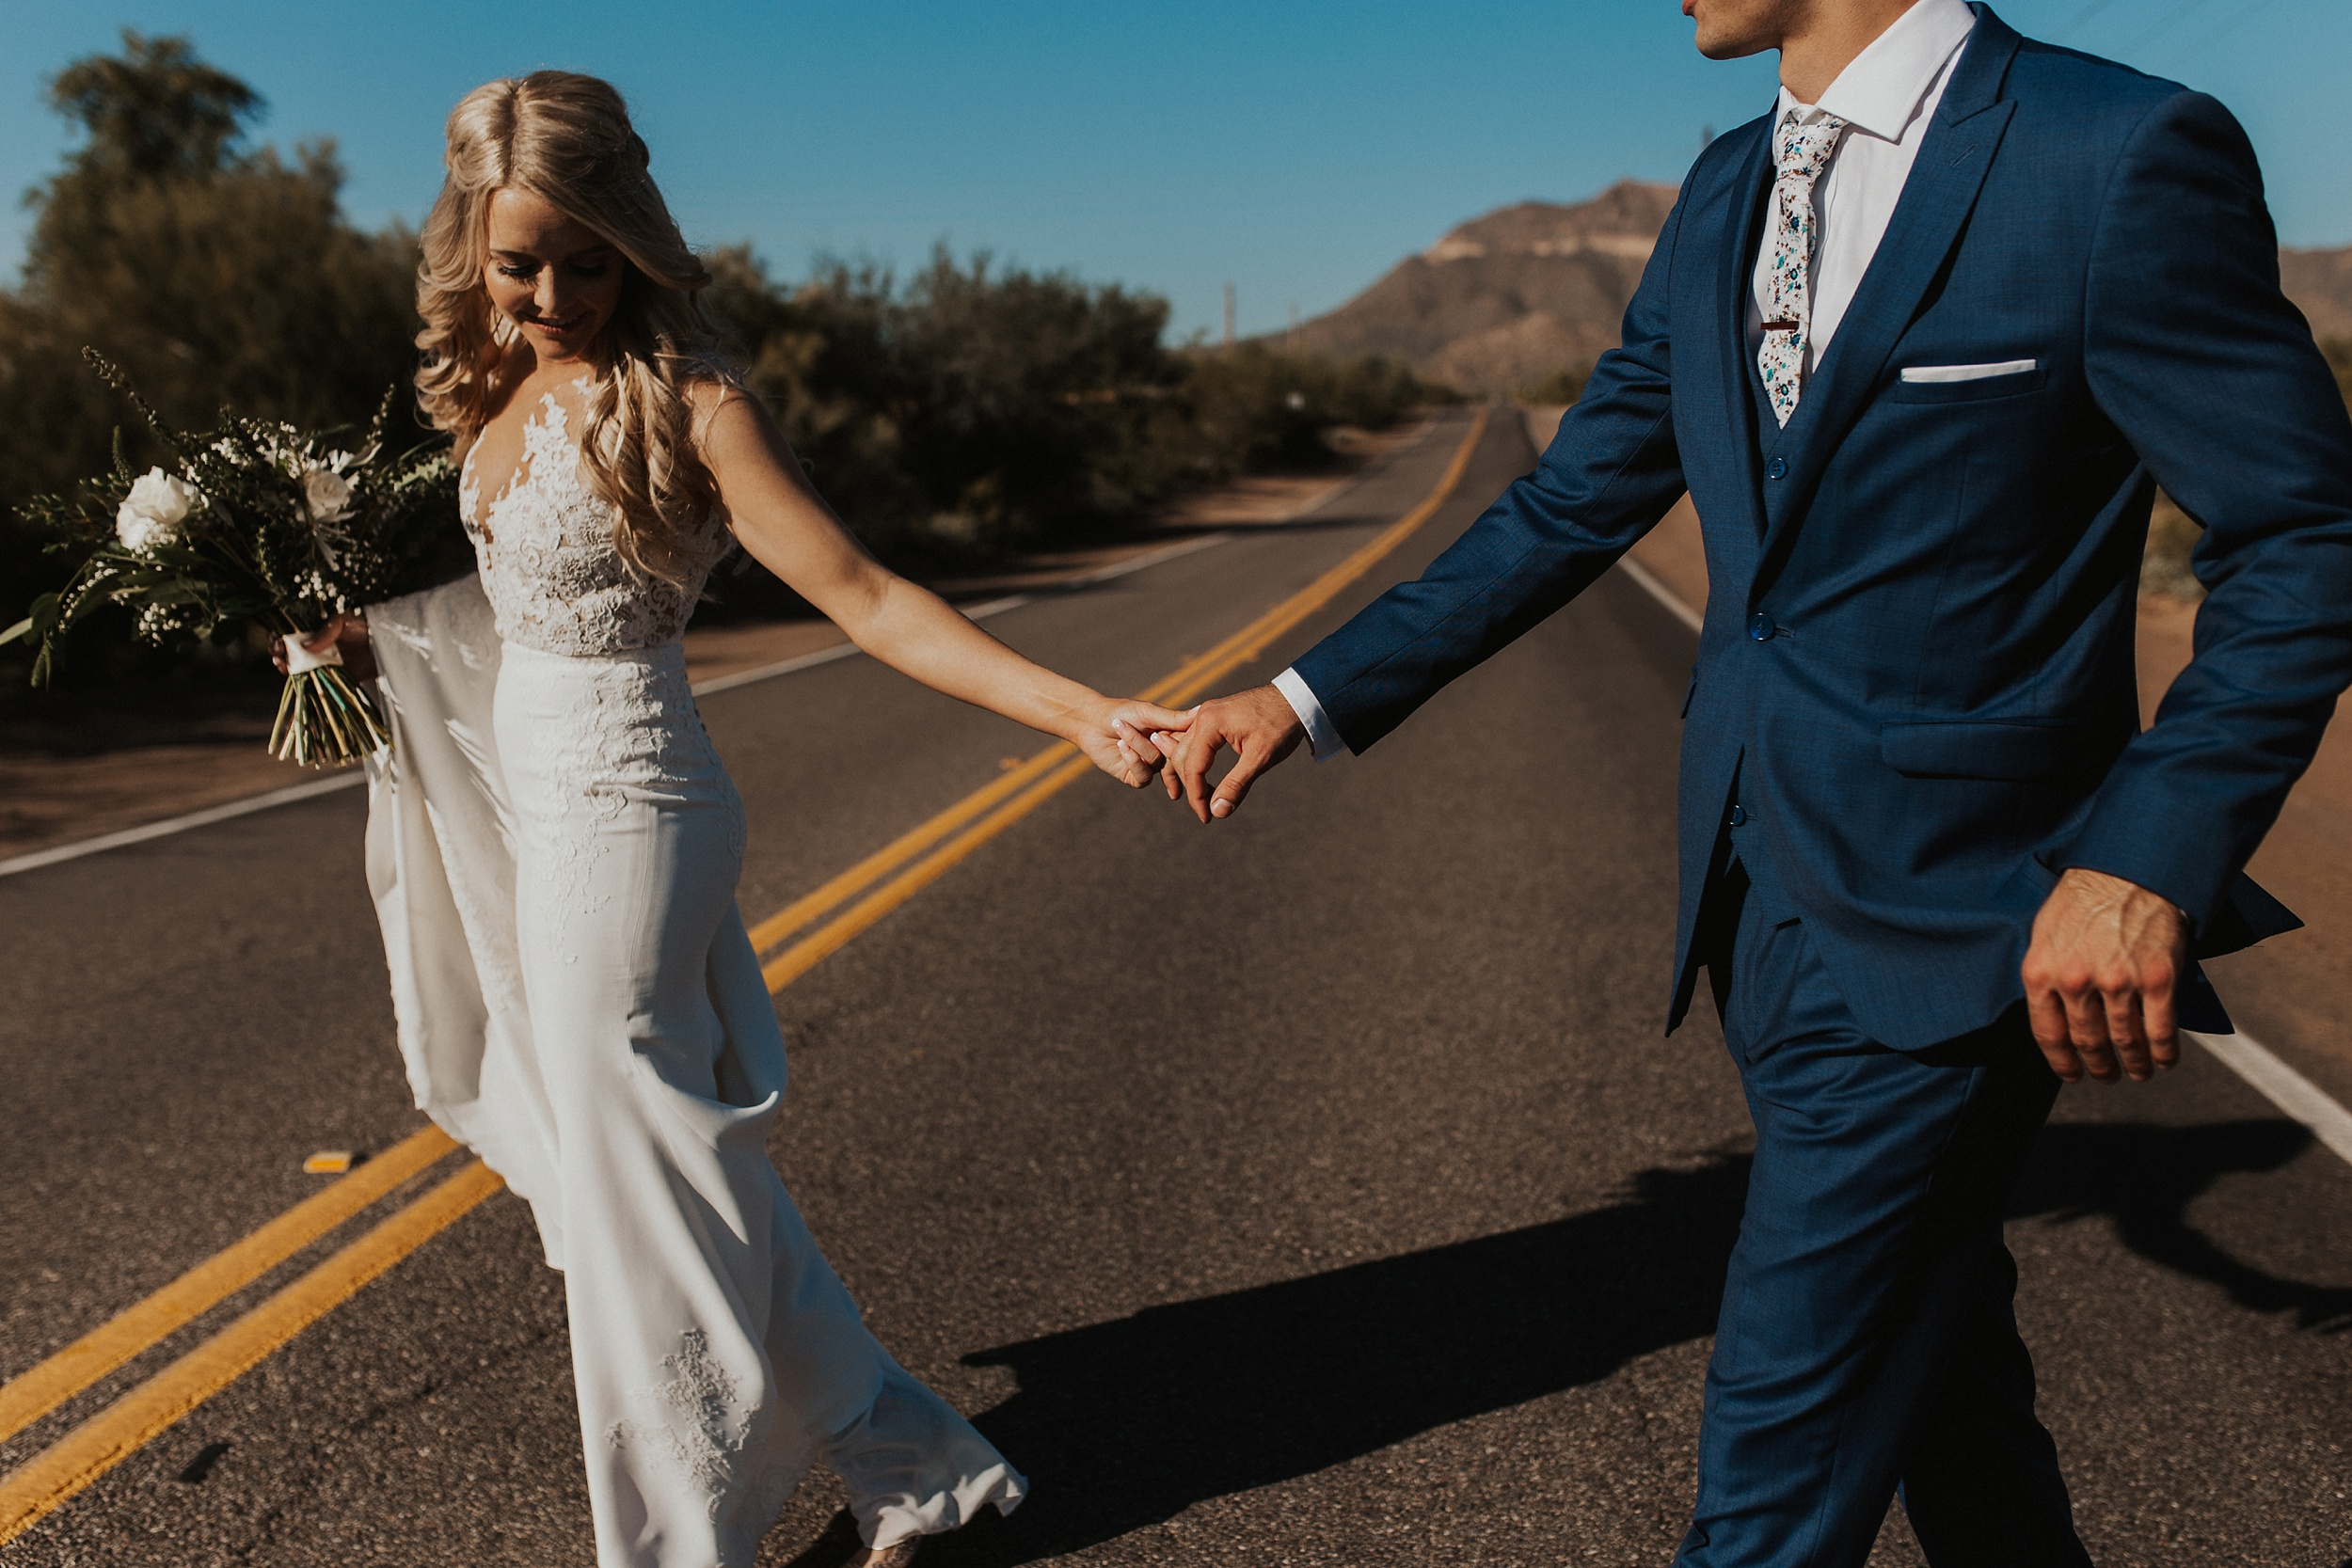 Meg+Bubba_Wedding_Bride+Groom_Portraits_Arizona-15.jpg